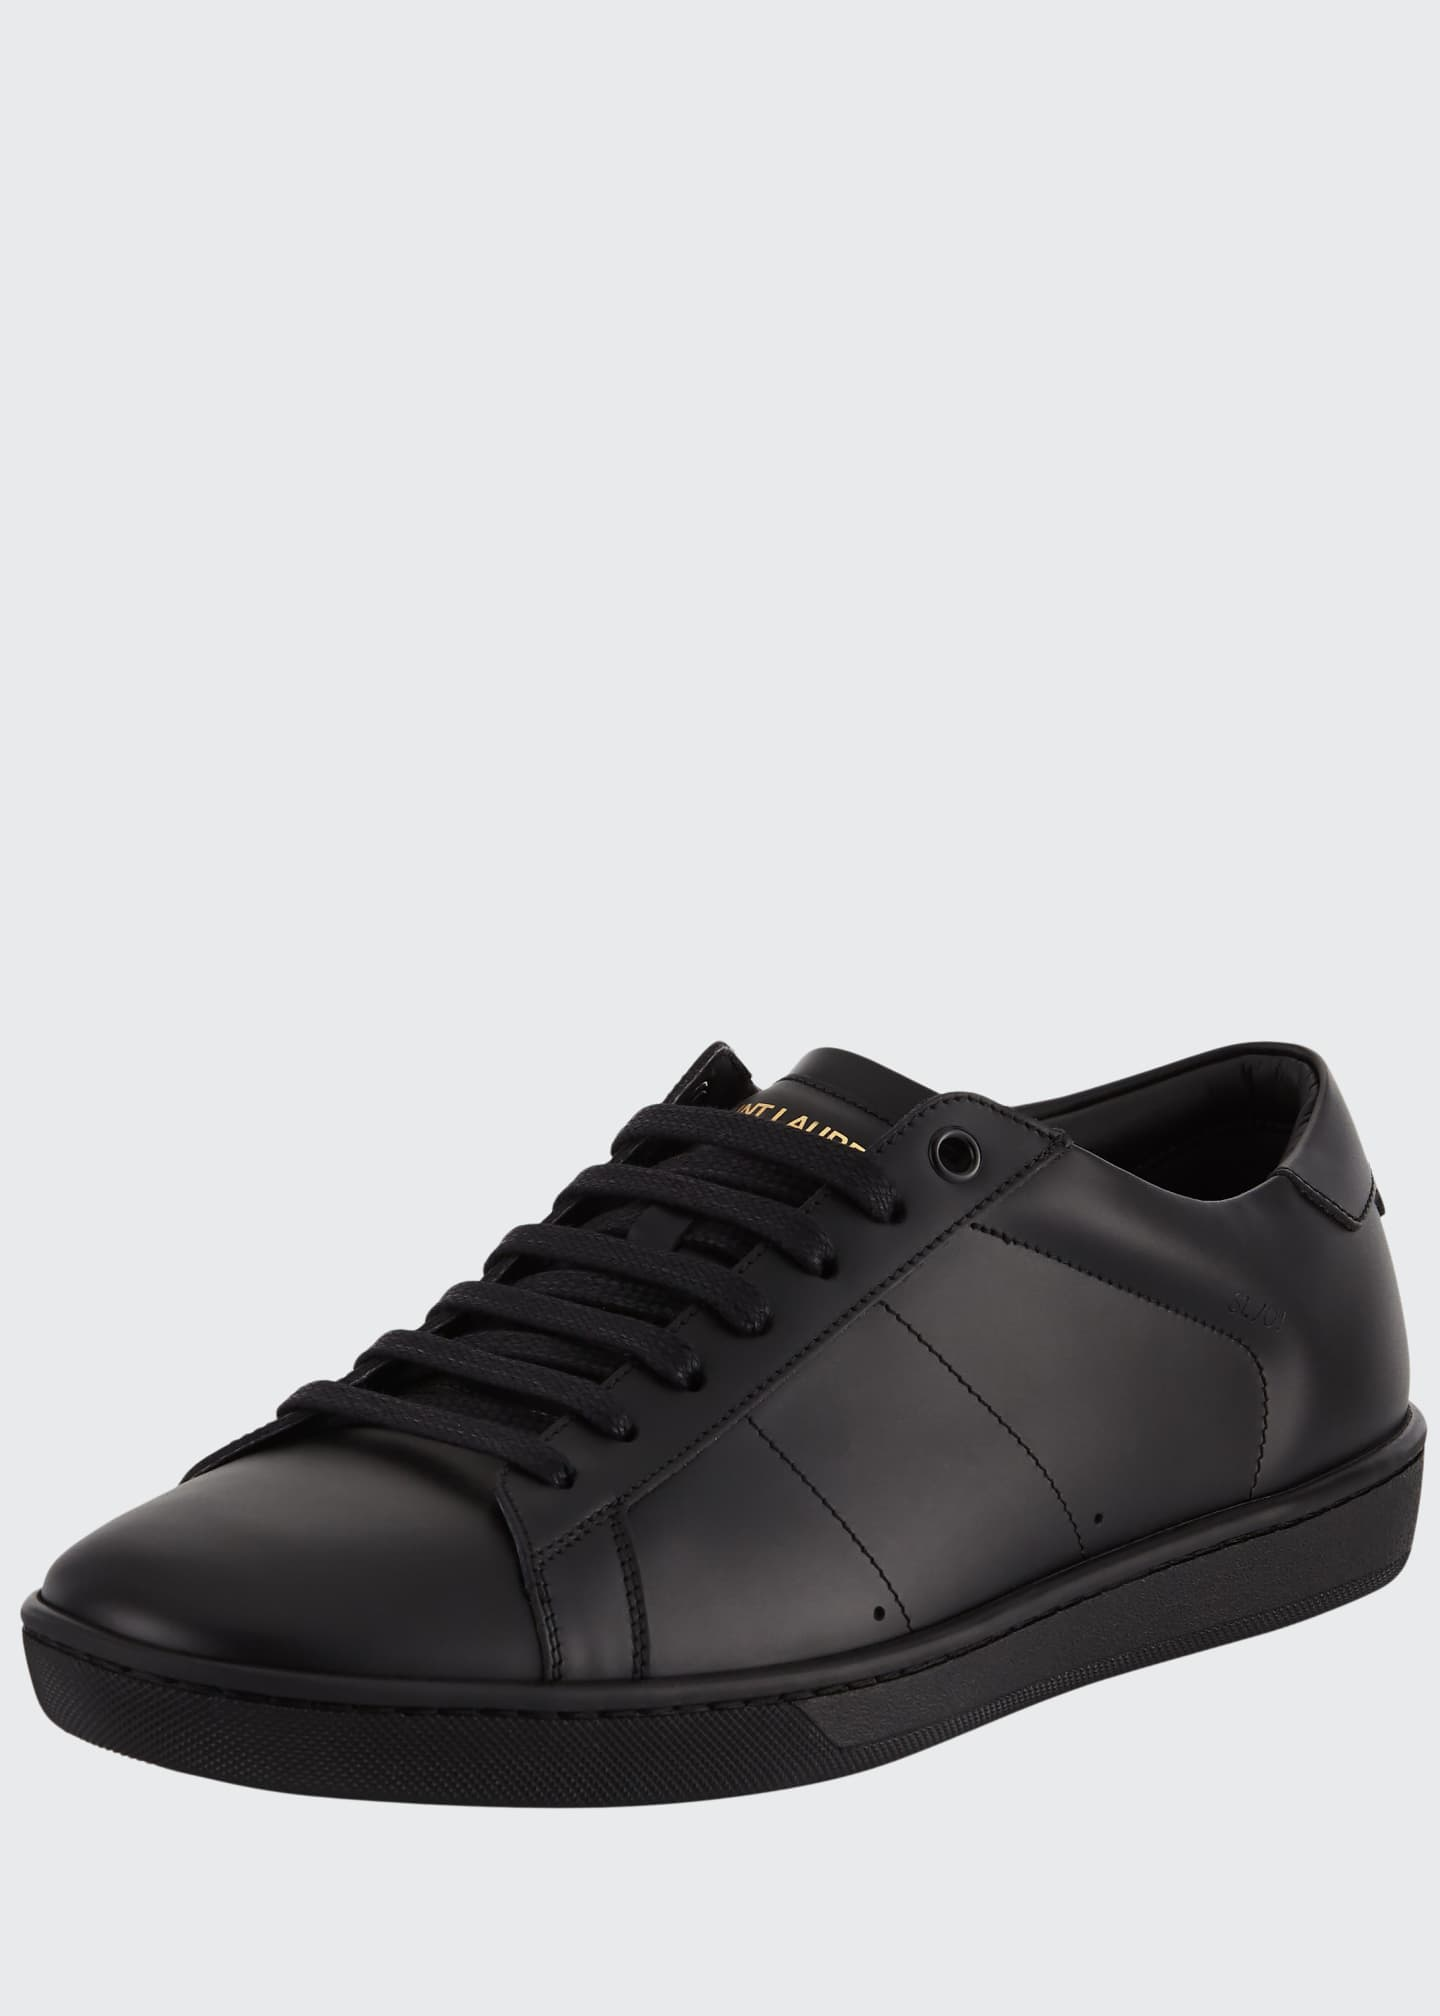 Image 1 of 3: Men's SL01 Leather Low-Top Sneakers